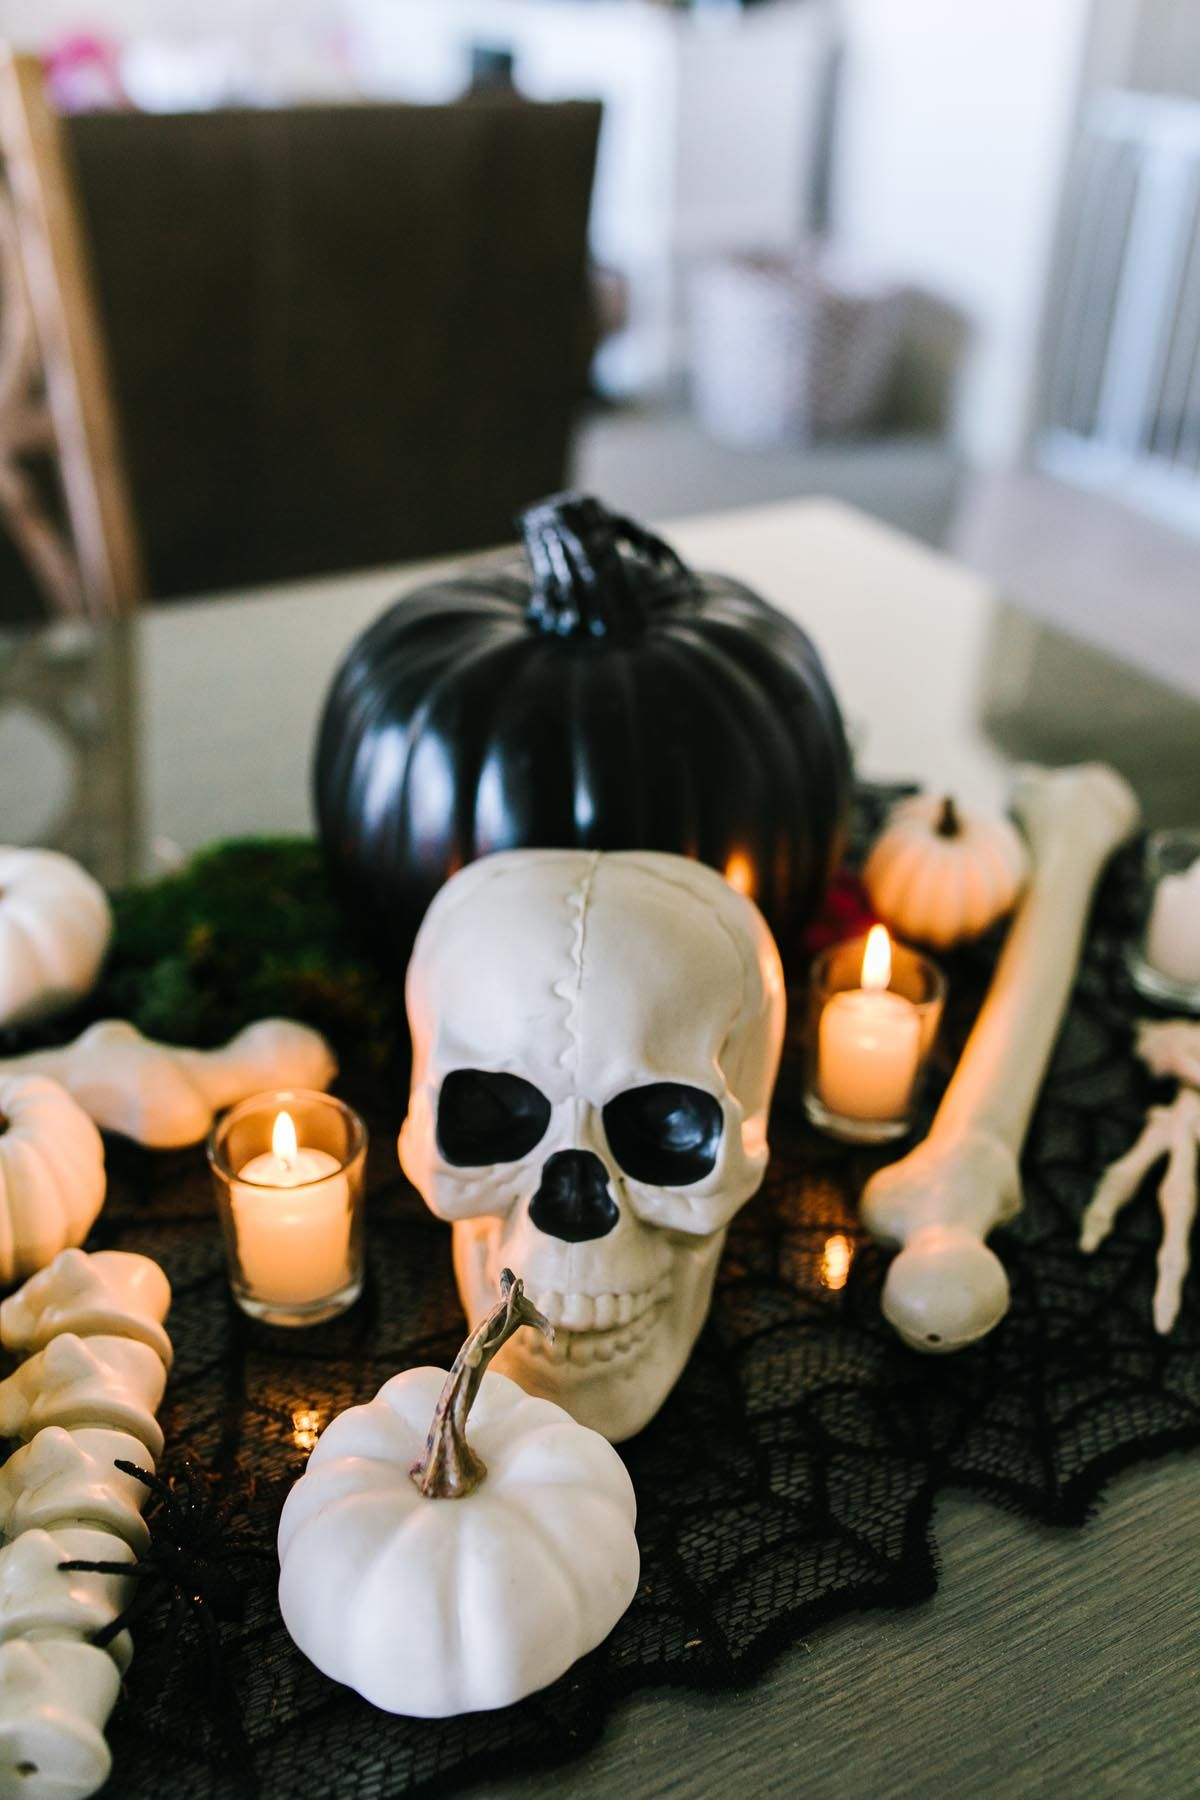 Halloween Decorations To Decorate Your Home Affordably